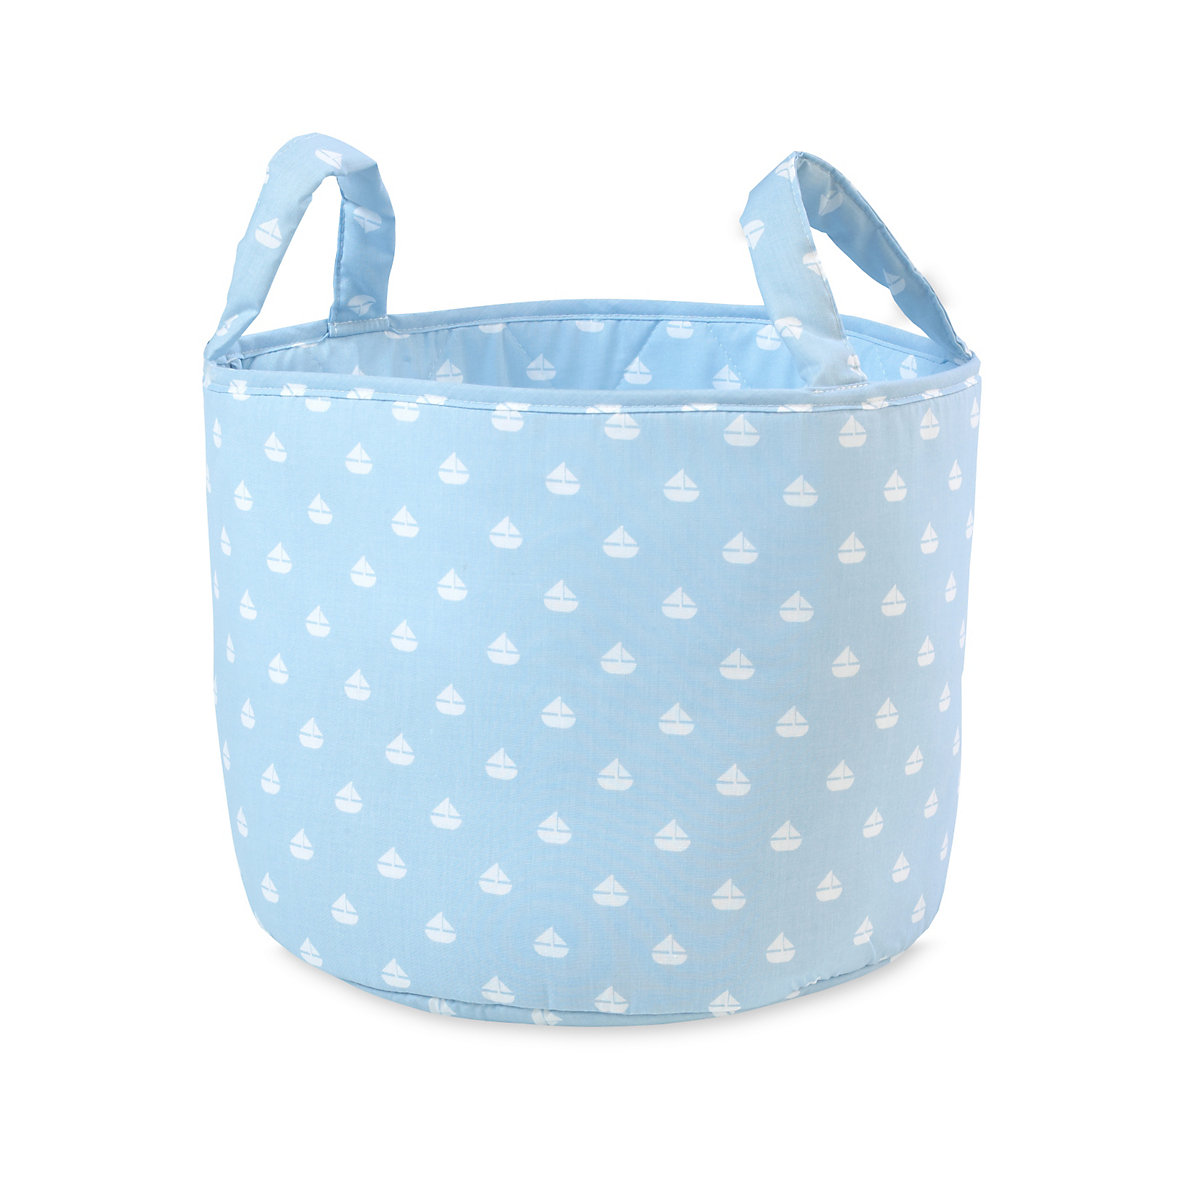 Mothercare Fabric Storage Basket- Blue Boats